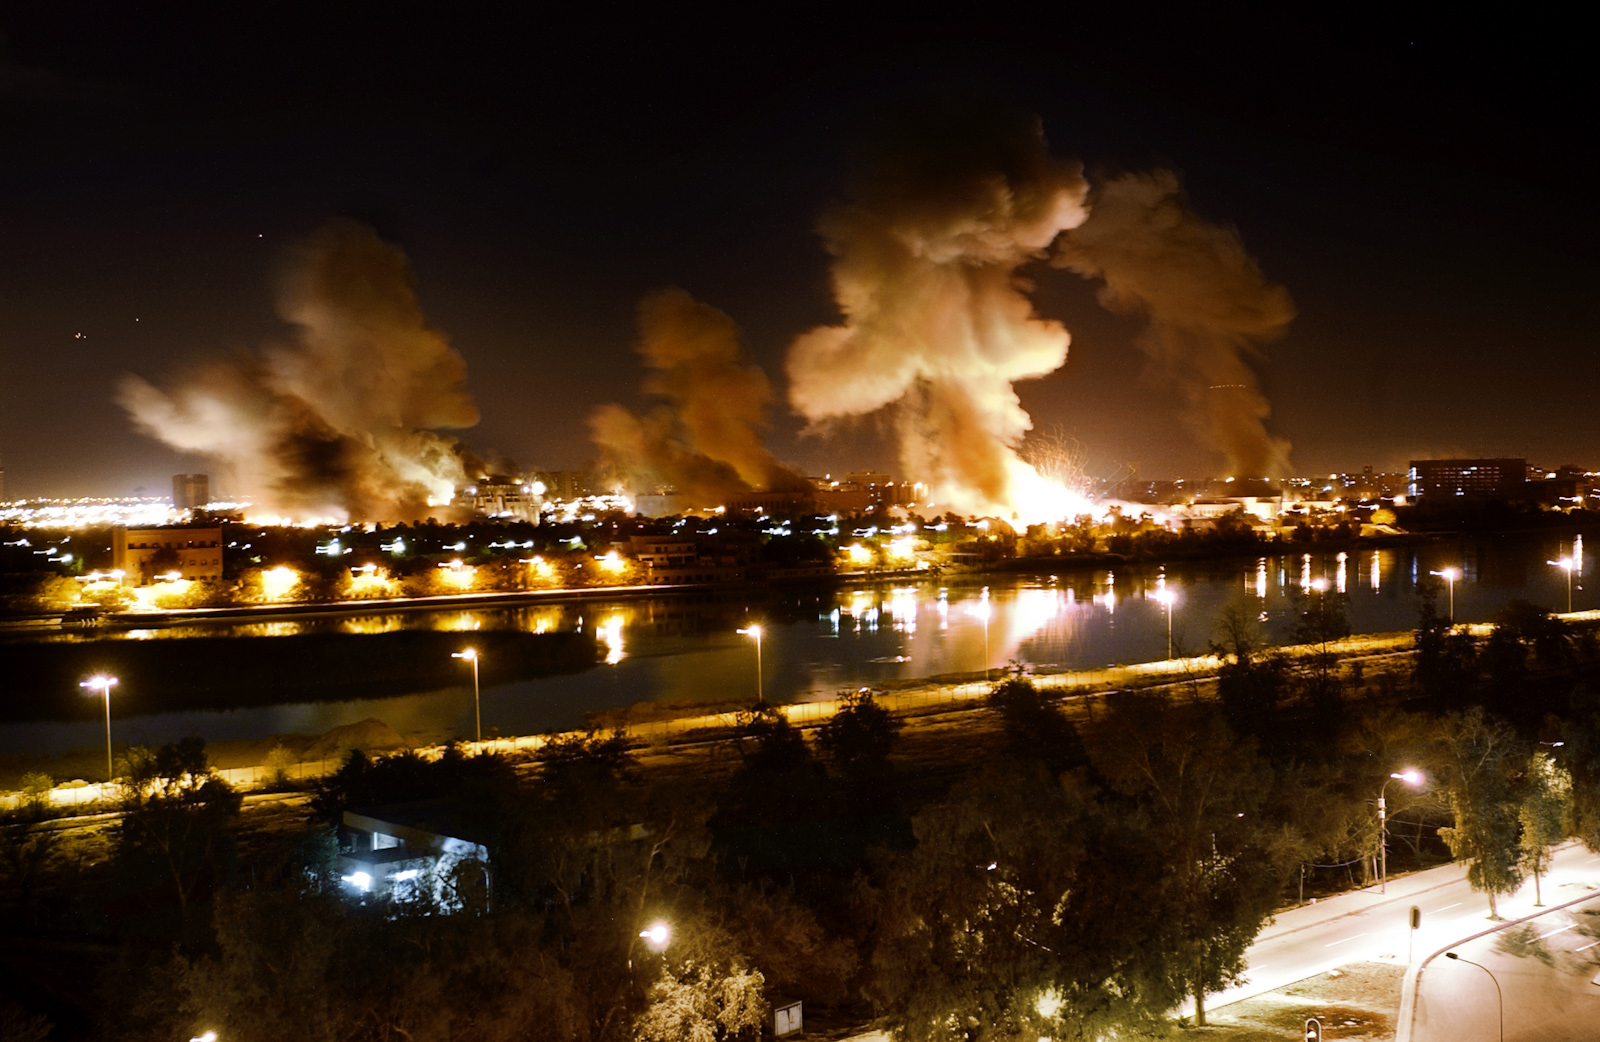 An explosion rocks a building in the palace complex of Saddam Hussein, during the U.S. 'Shock and Awe' air raids which marked the beginning of the occupation in Baghdad, Iraq, April 21, 2003. The complex on the banks of the Tigris later became what is now known as the Green Zone and houses both the Iraqi legislation as well as key U.S. installations.